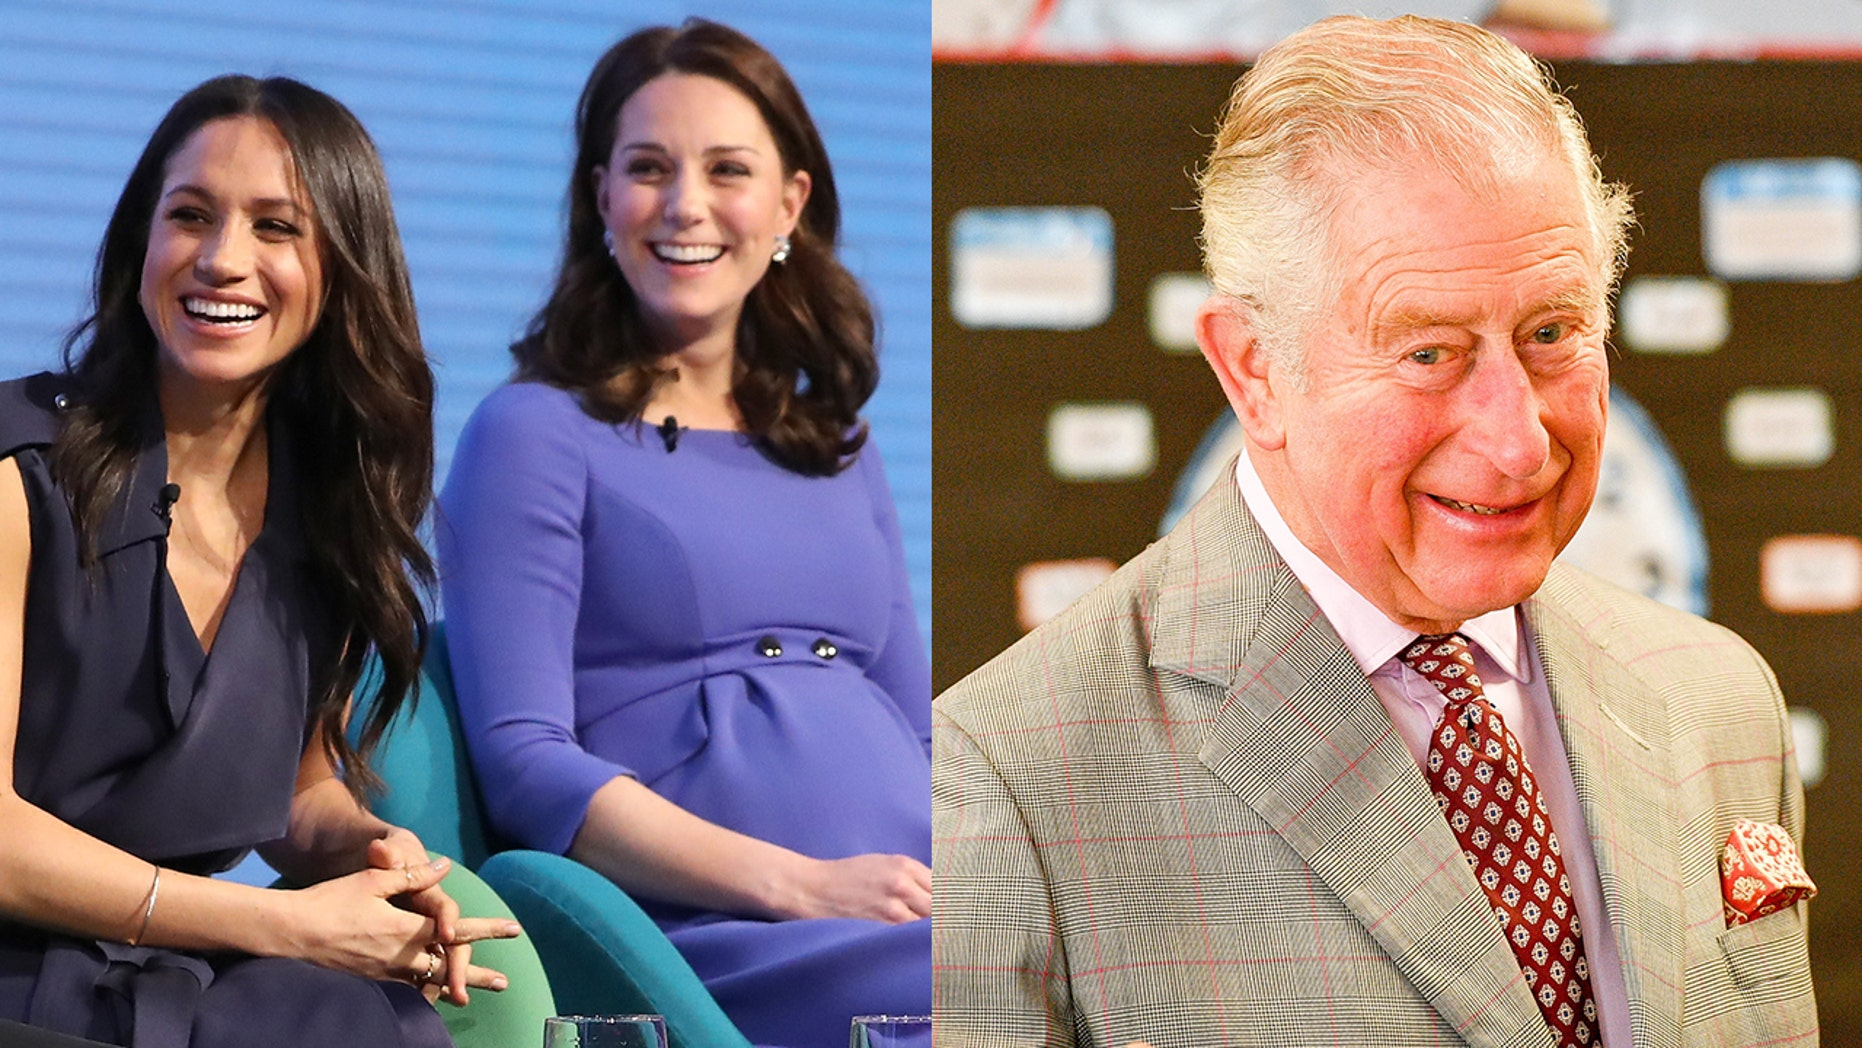 Prince Charles reportedly put his foot down to end the feud between Meghan Markle and Kate Middleton.